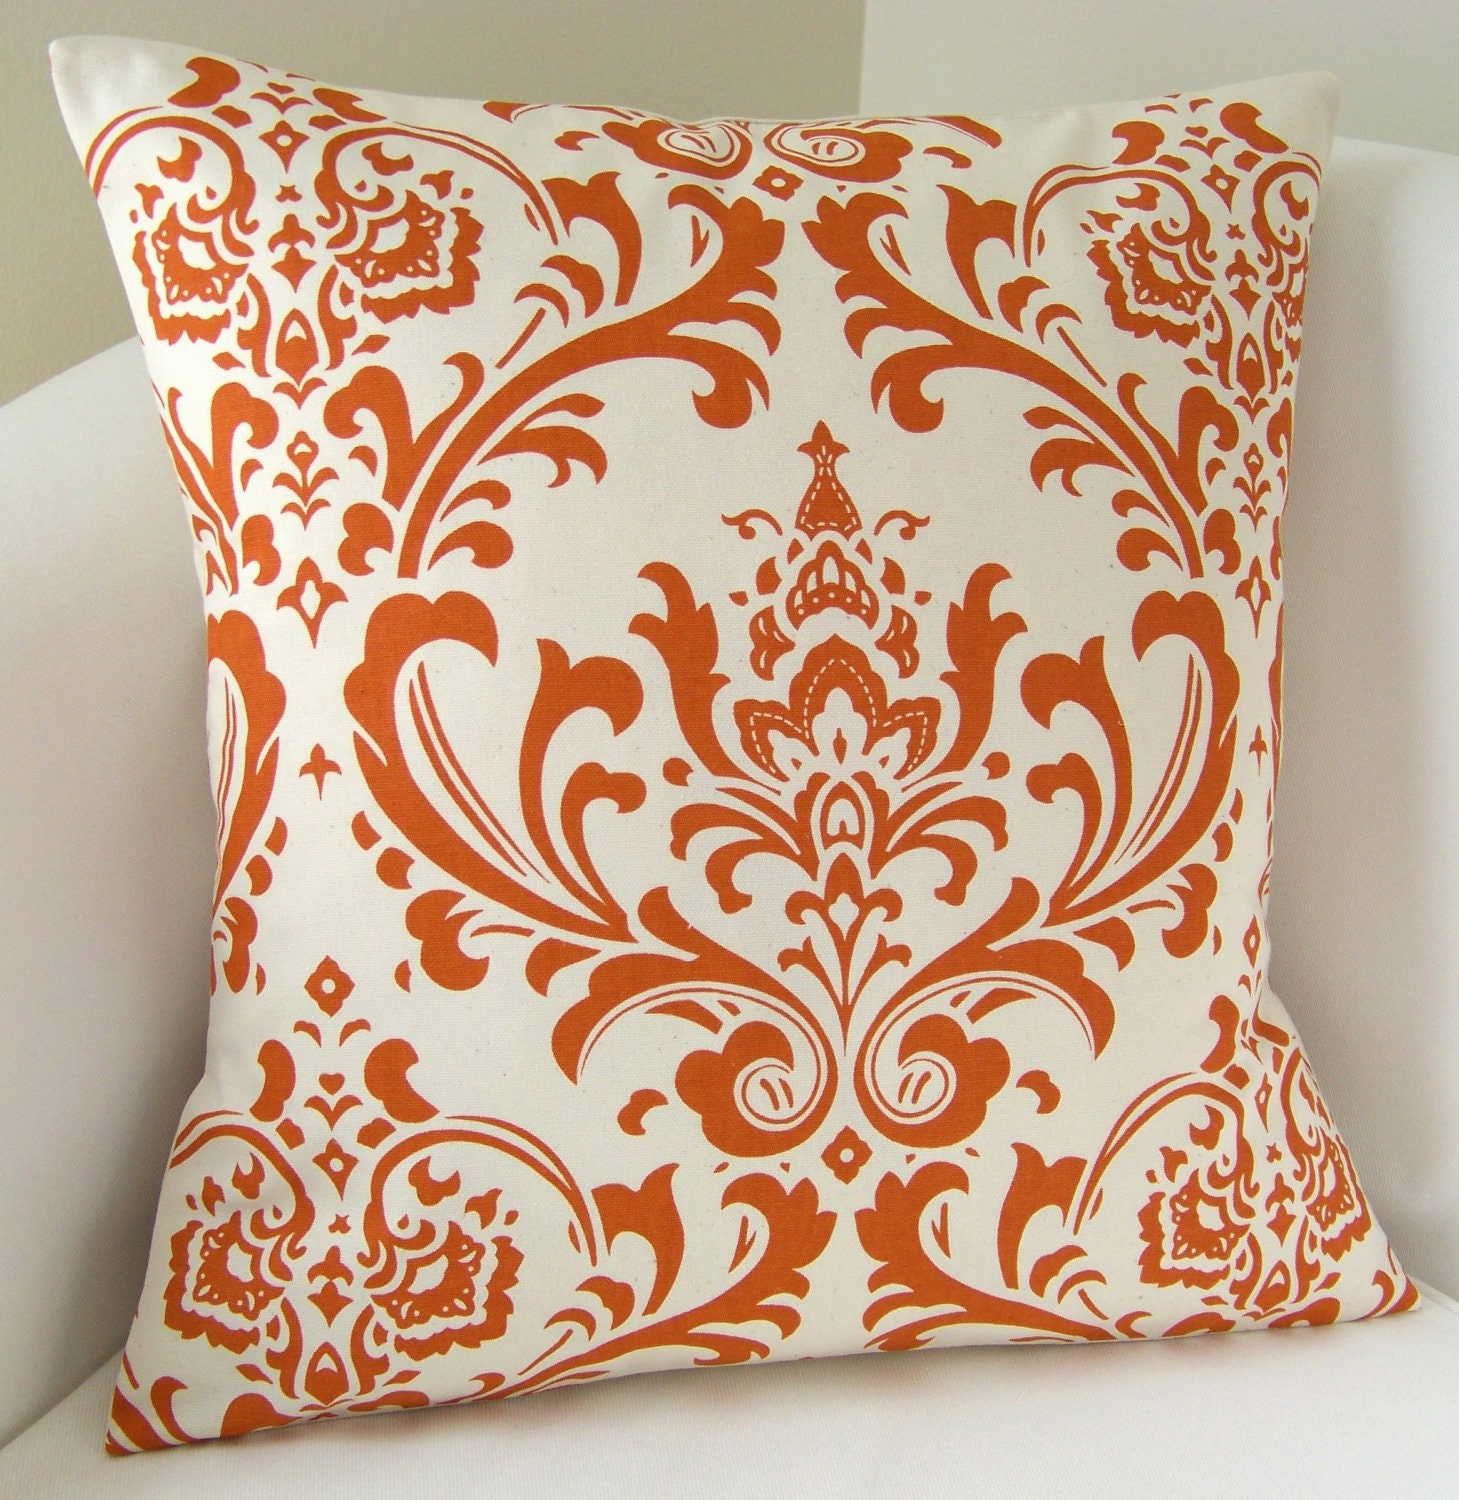 Decorative Pillows With Orange : Orange Pillow Cover Damask Decorative Pillow Accent by nestables